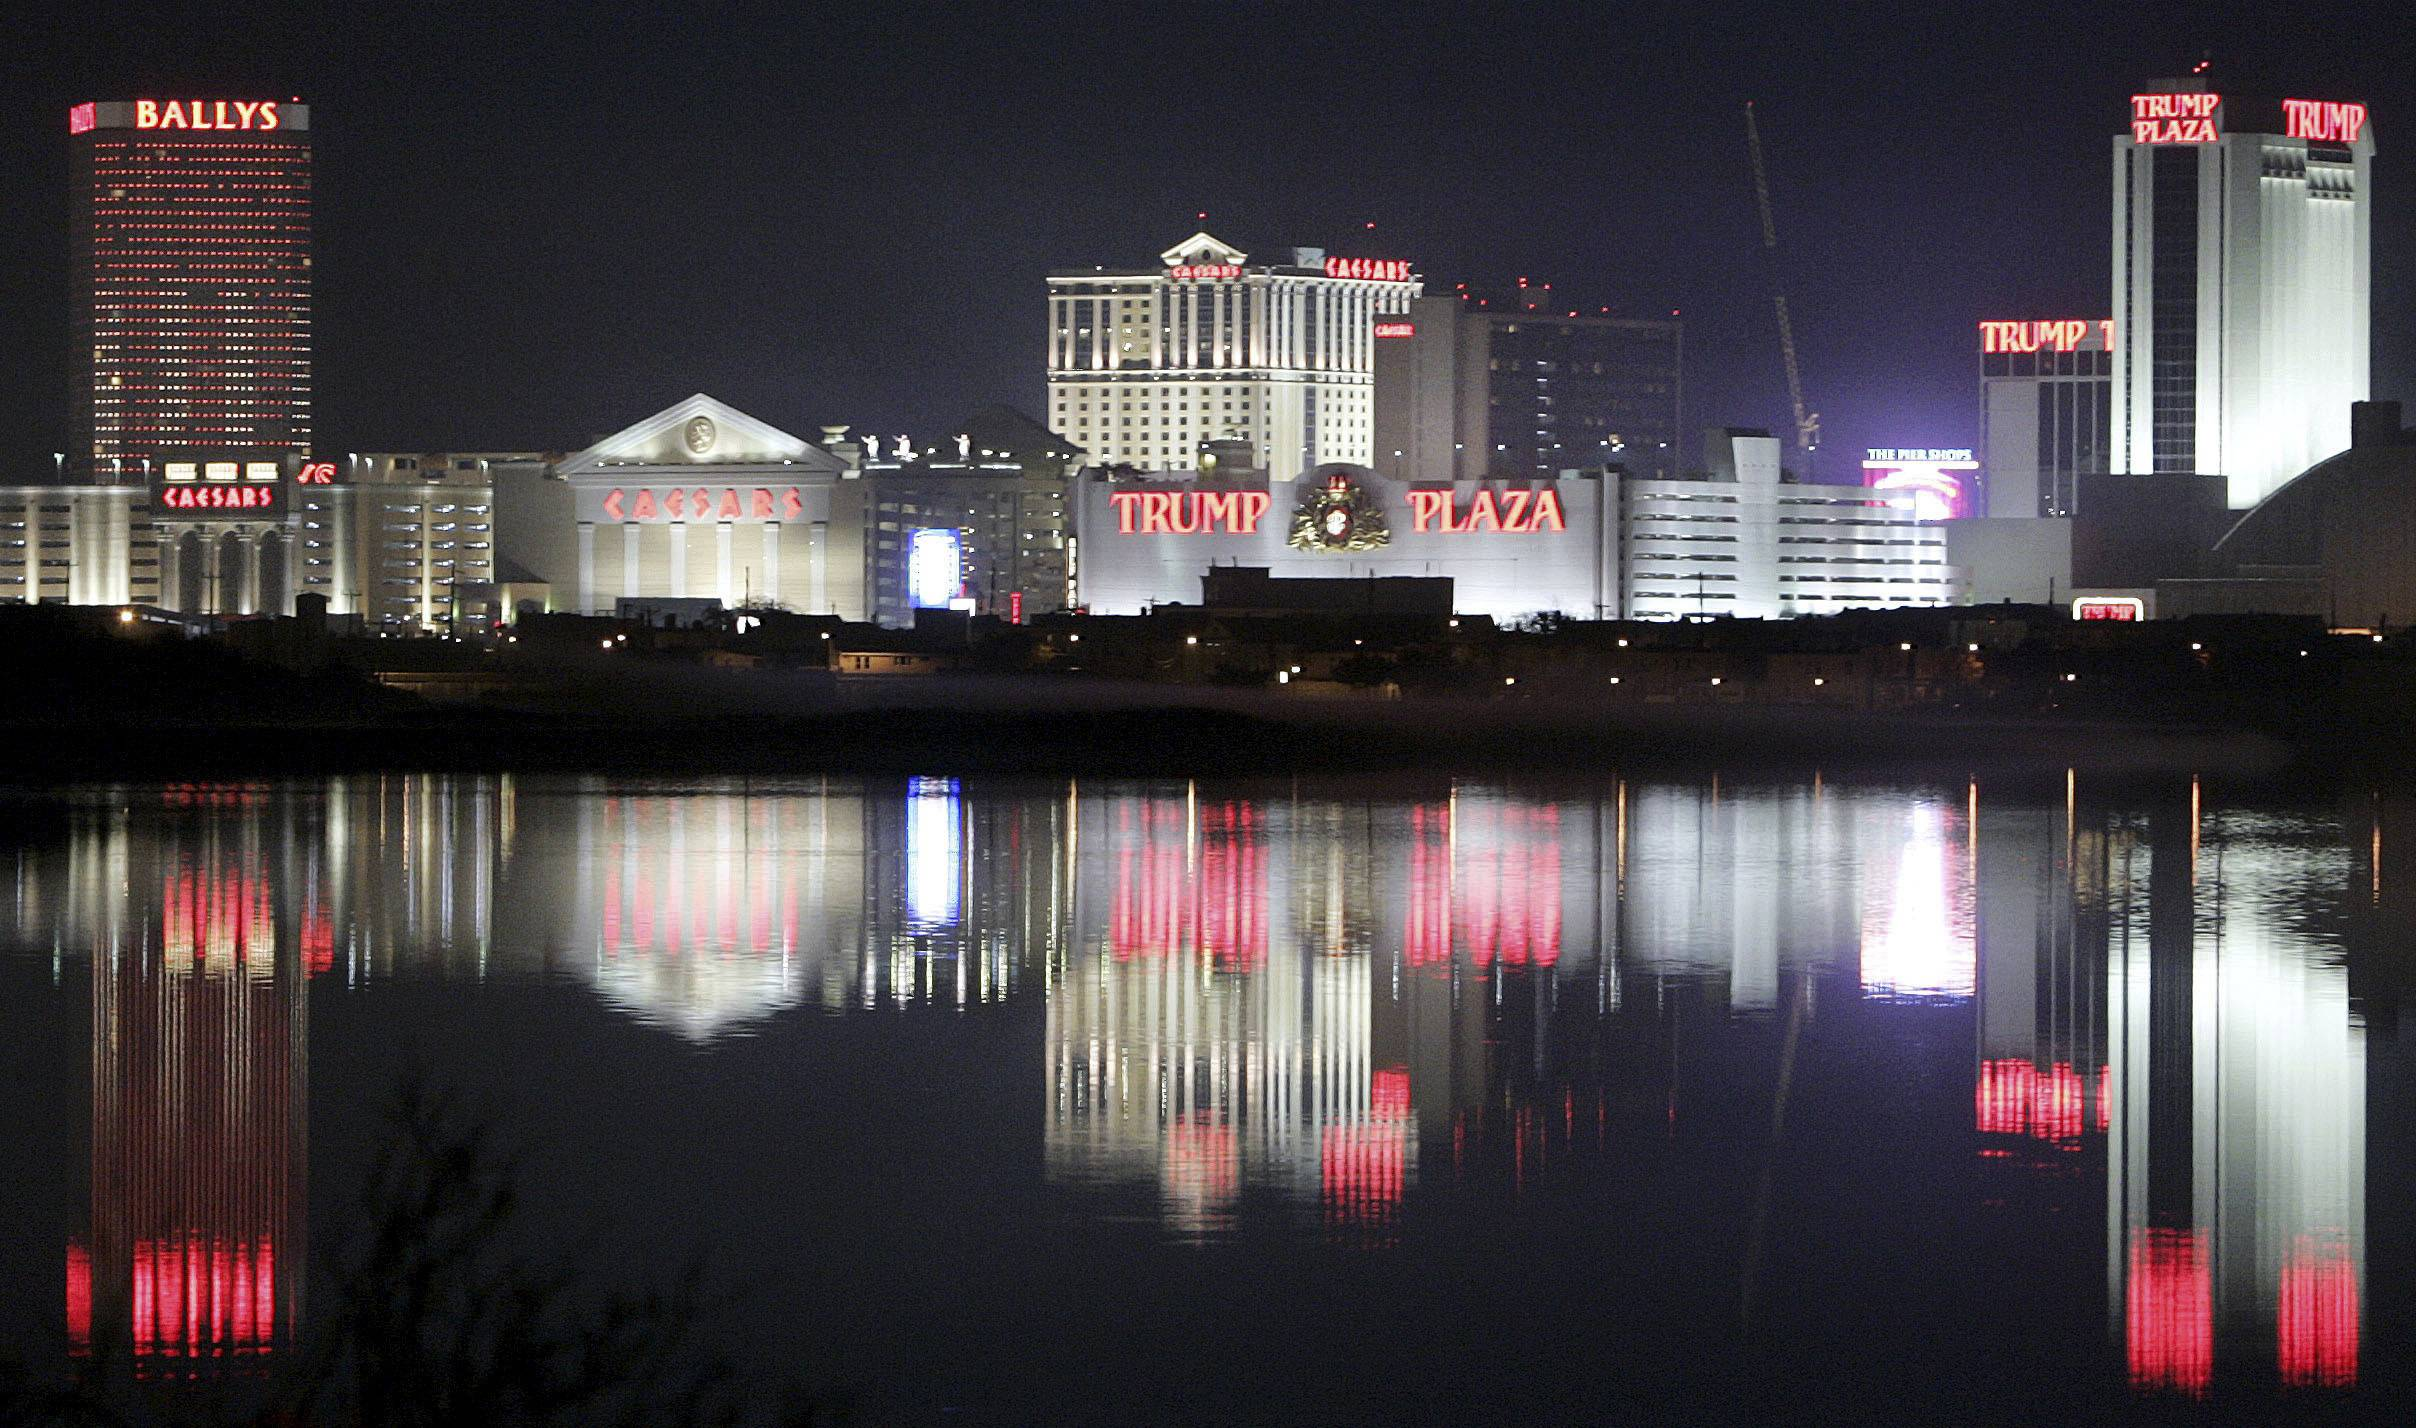 Hotels and casinos in Atlantic City, N.J. are reflected in the water early in the morning. Now that the shock over the prospect of losing three Atlantic City casinos in the coming months is starting to wear off, many workers and their union are mounting a growing effort to keep them open by attracting new bidders and offering flexibility in contract negotiations with any potential buyer.